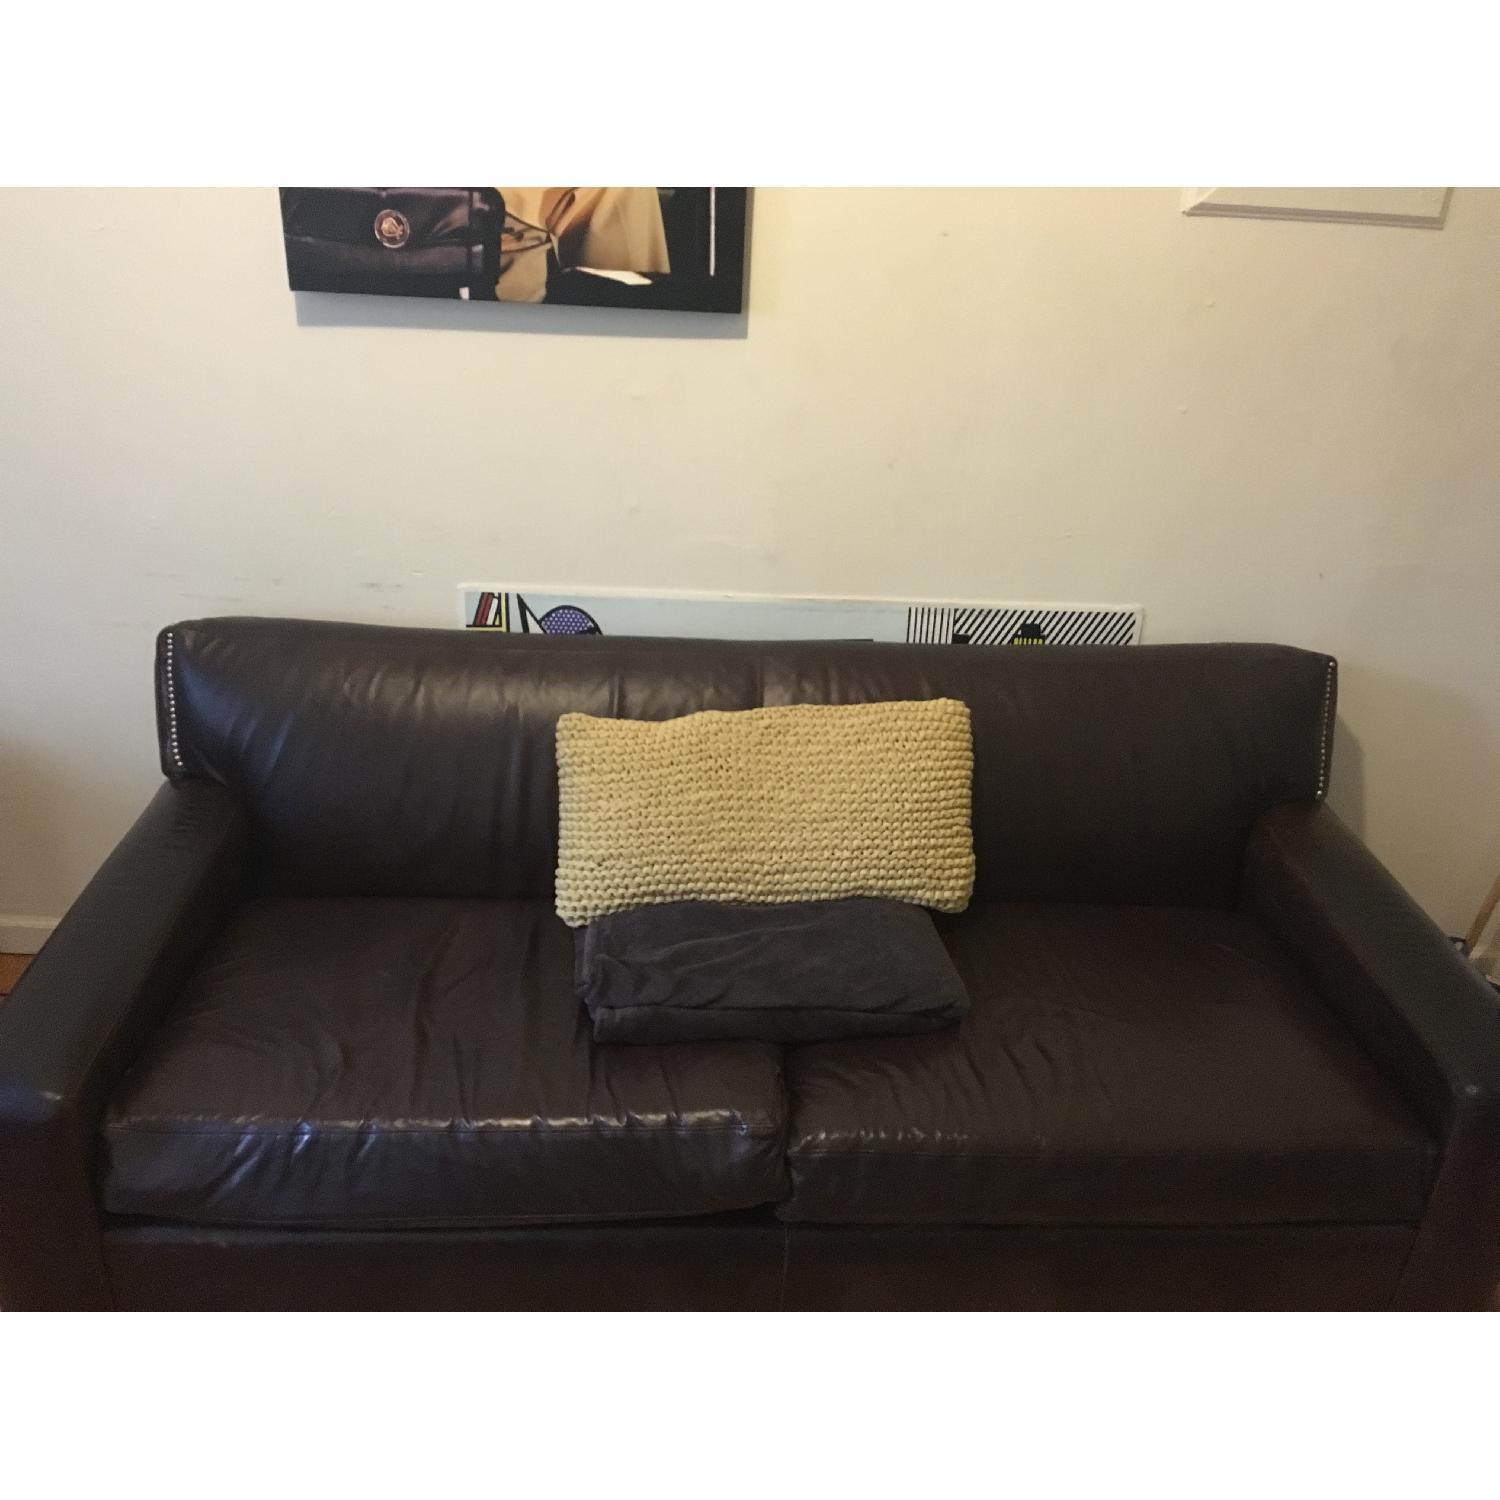 Mitchell Gold + Bob Williams Leather Couch - image-3